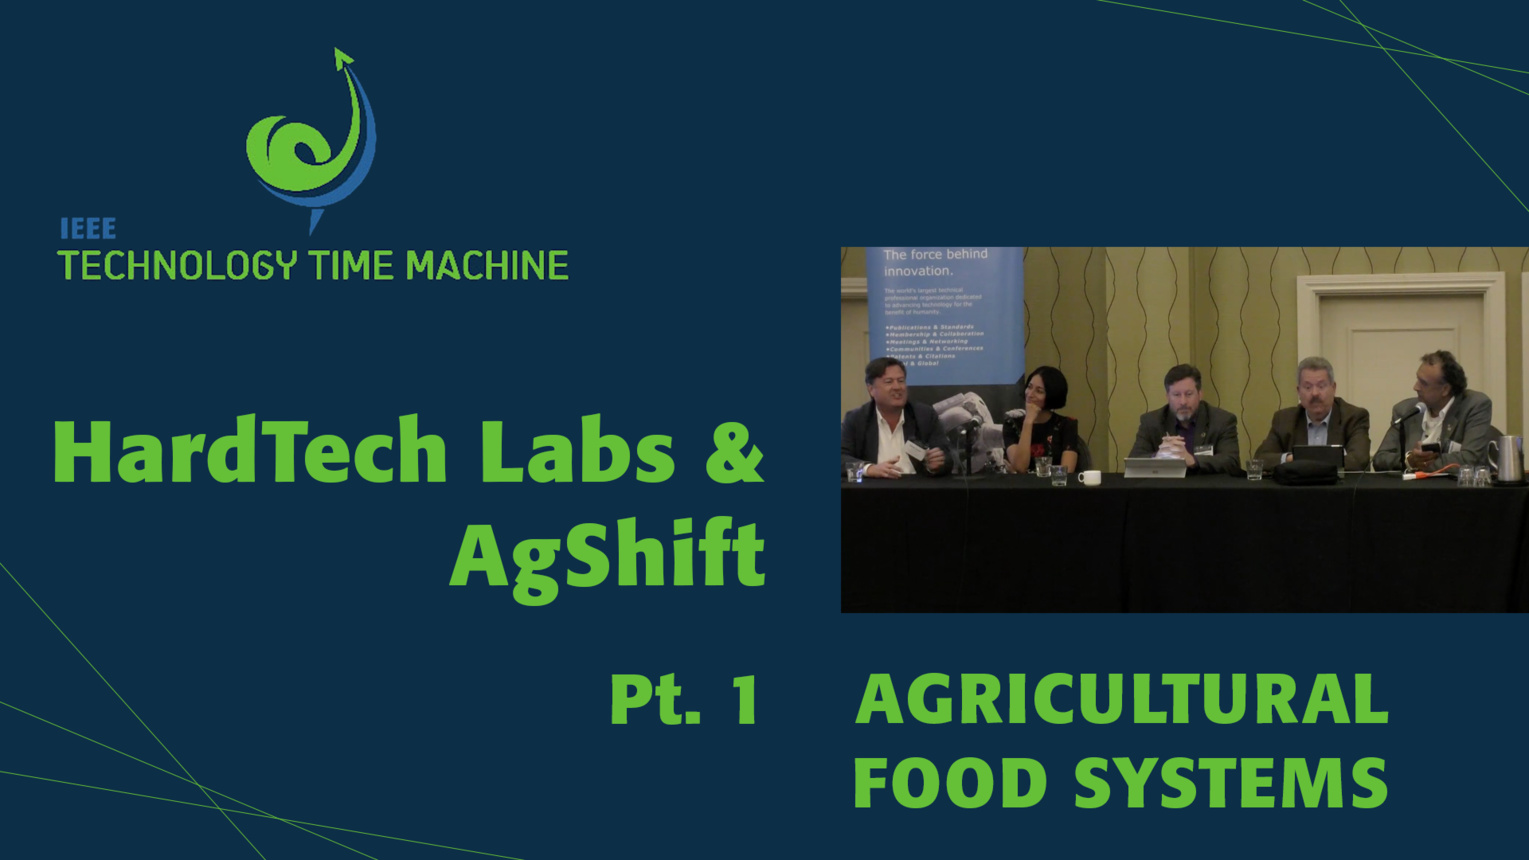 Part 1: Derek Footer and Miku Jah - Agricultural Food Systems Panel - TTM 2018